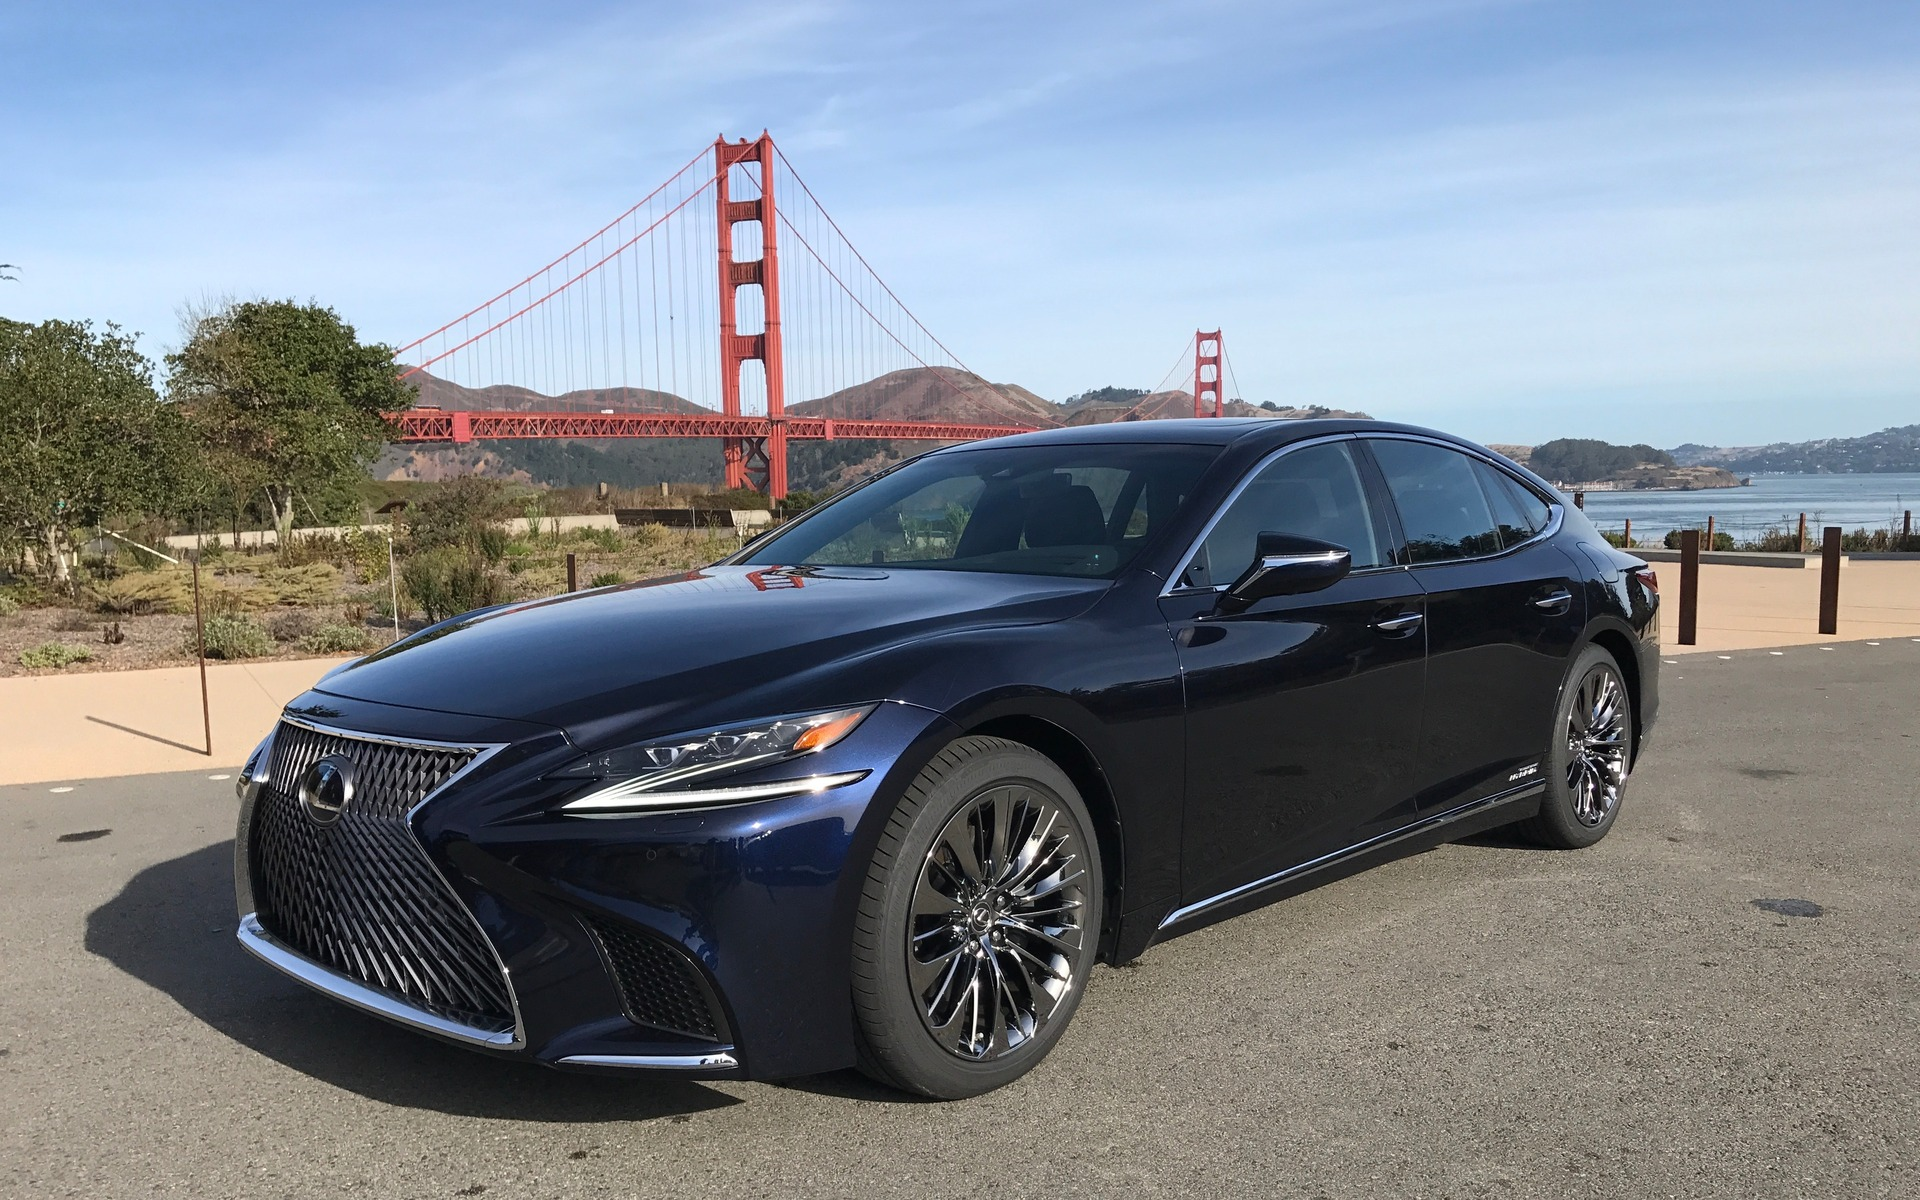 2018 Lexus Ls 500 More Refined And More Dynamic The Car Guide